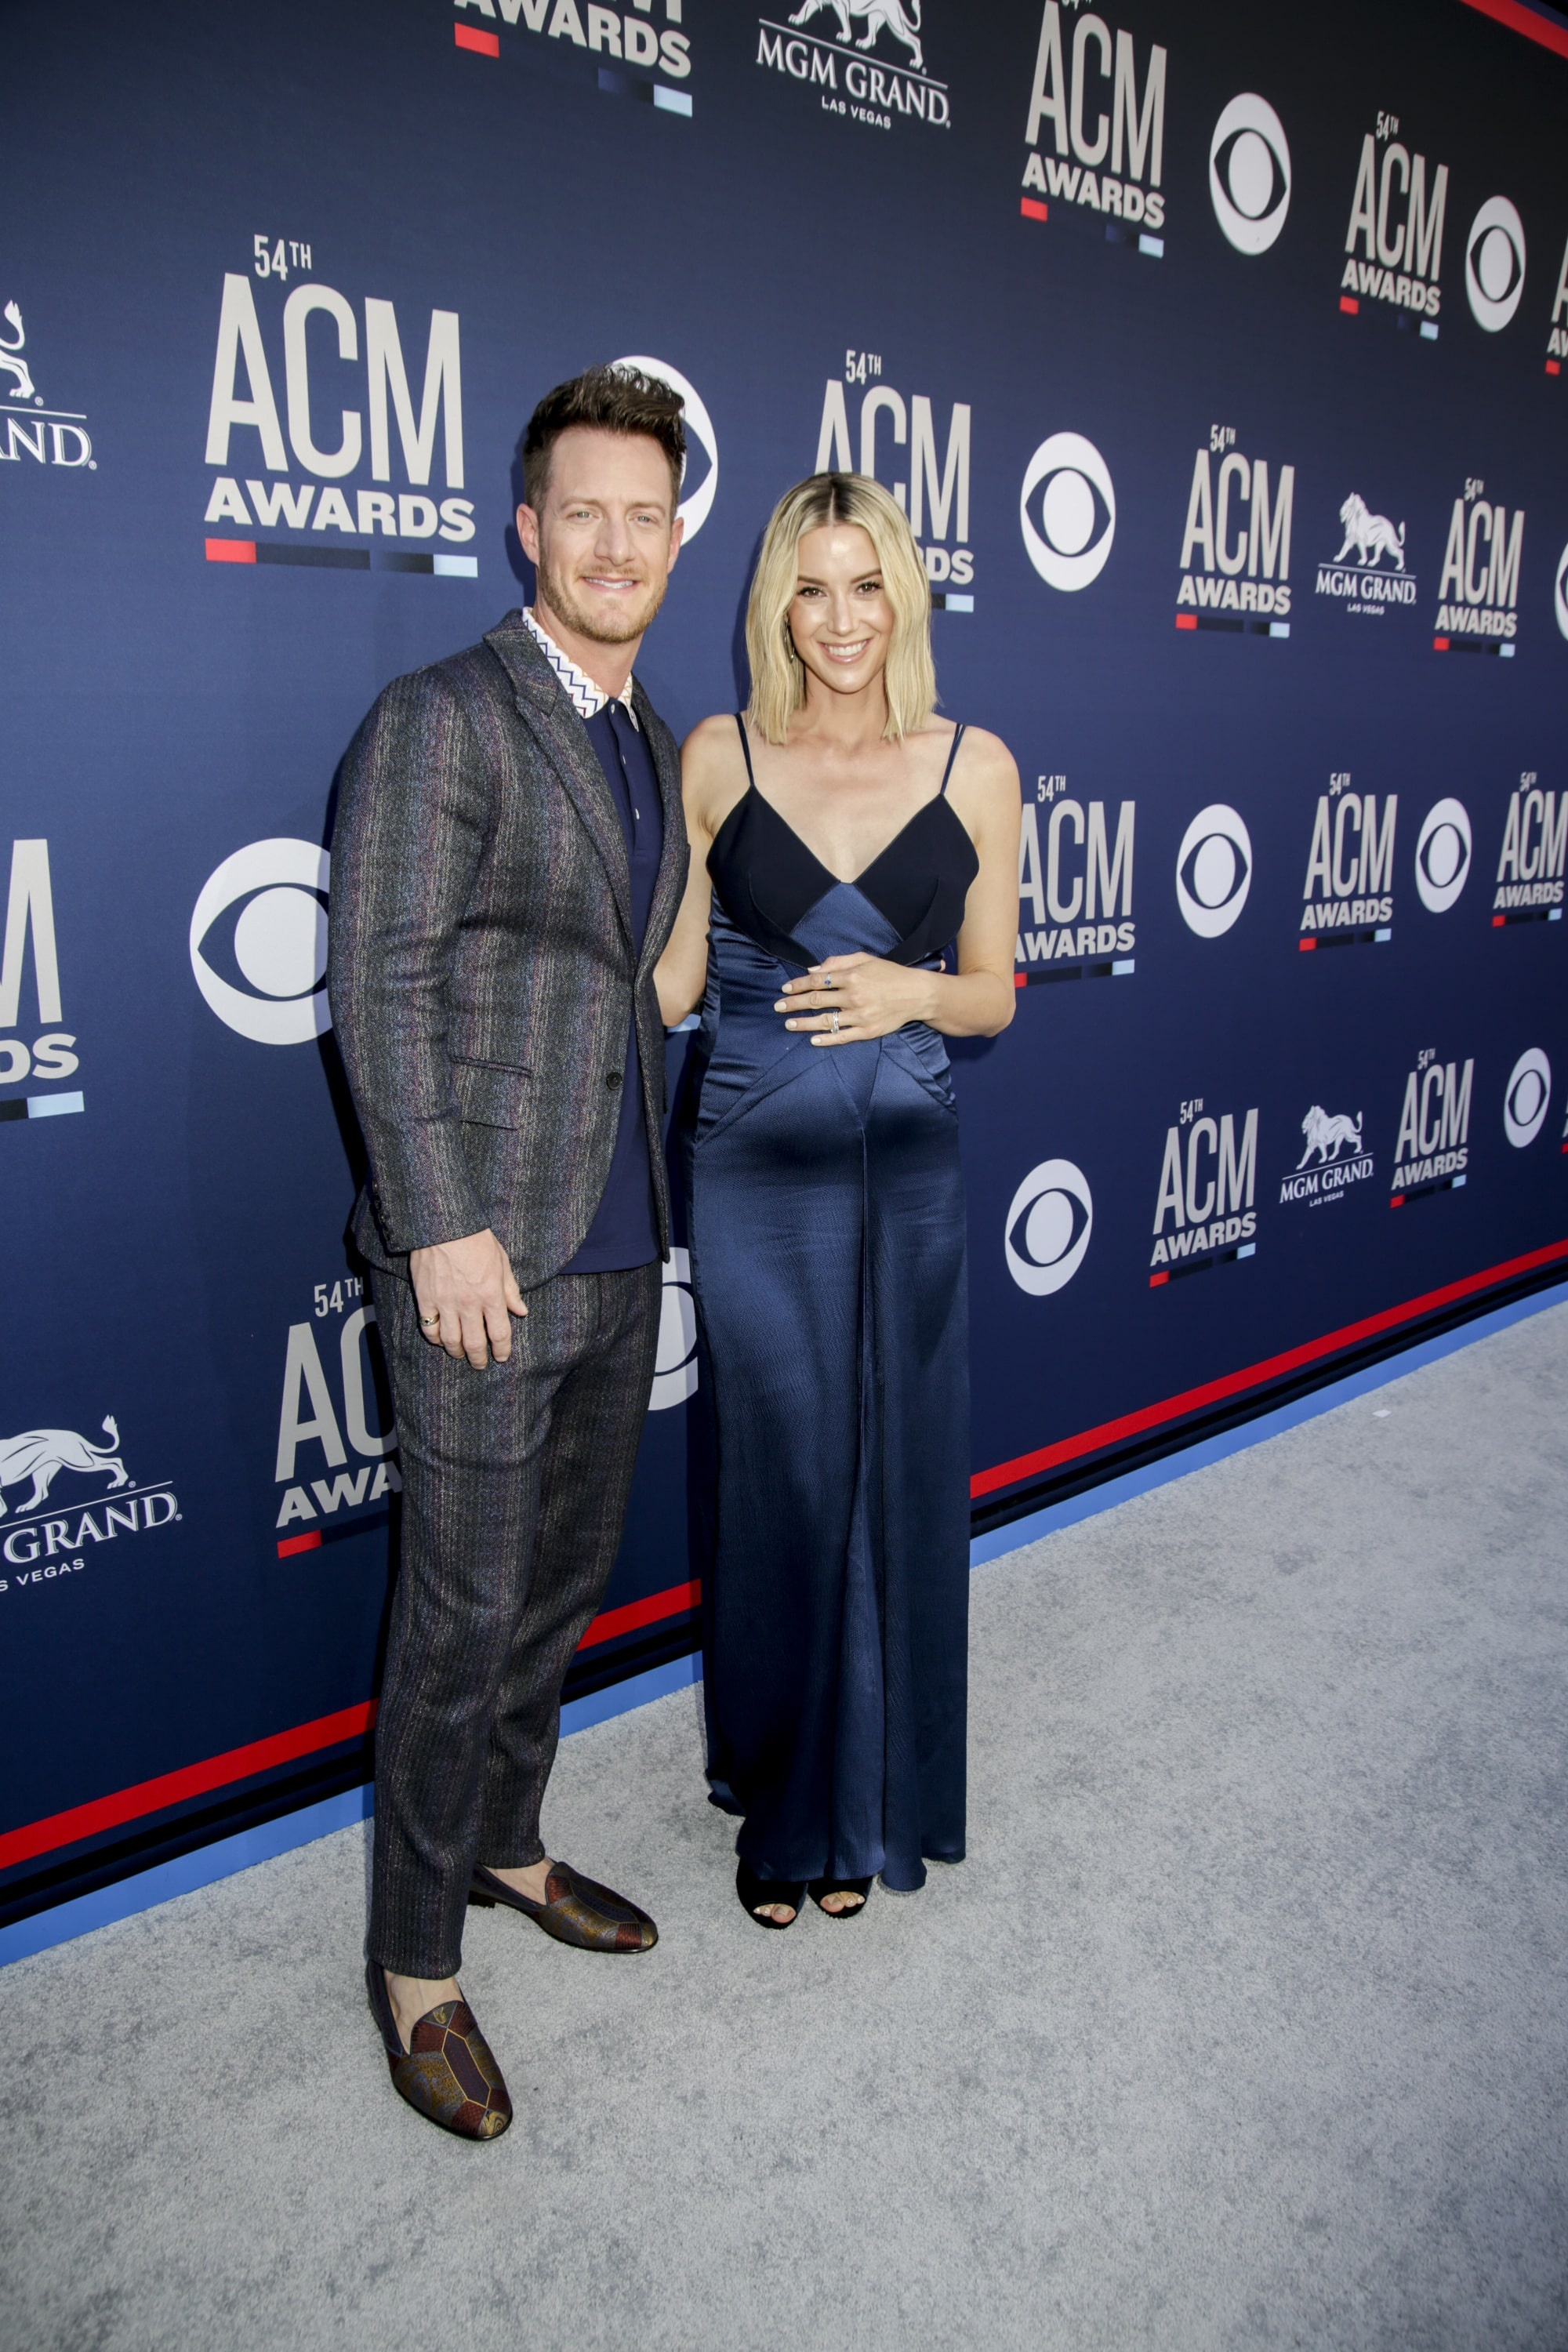 Tyler Hubbard of Florida Georgia Line and Hayley Hubbard attends the 54TH ACADEMY OF COUNTRY MUSIC AWARDS, to broadcast LIVE from MGM Grand Garden Arena in Las Vegas Sunday, April 7, 2019 (8:00-11:00 PM, ET/delayed PT) on the CBS Television Network. Photo: Francis Specker/CBS ©2019 CBS Broadcasting, Inc. All Rights Reserved.